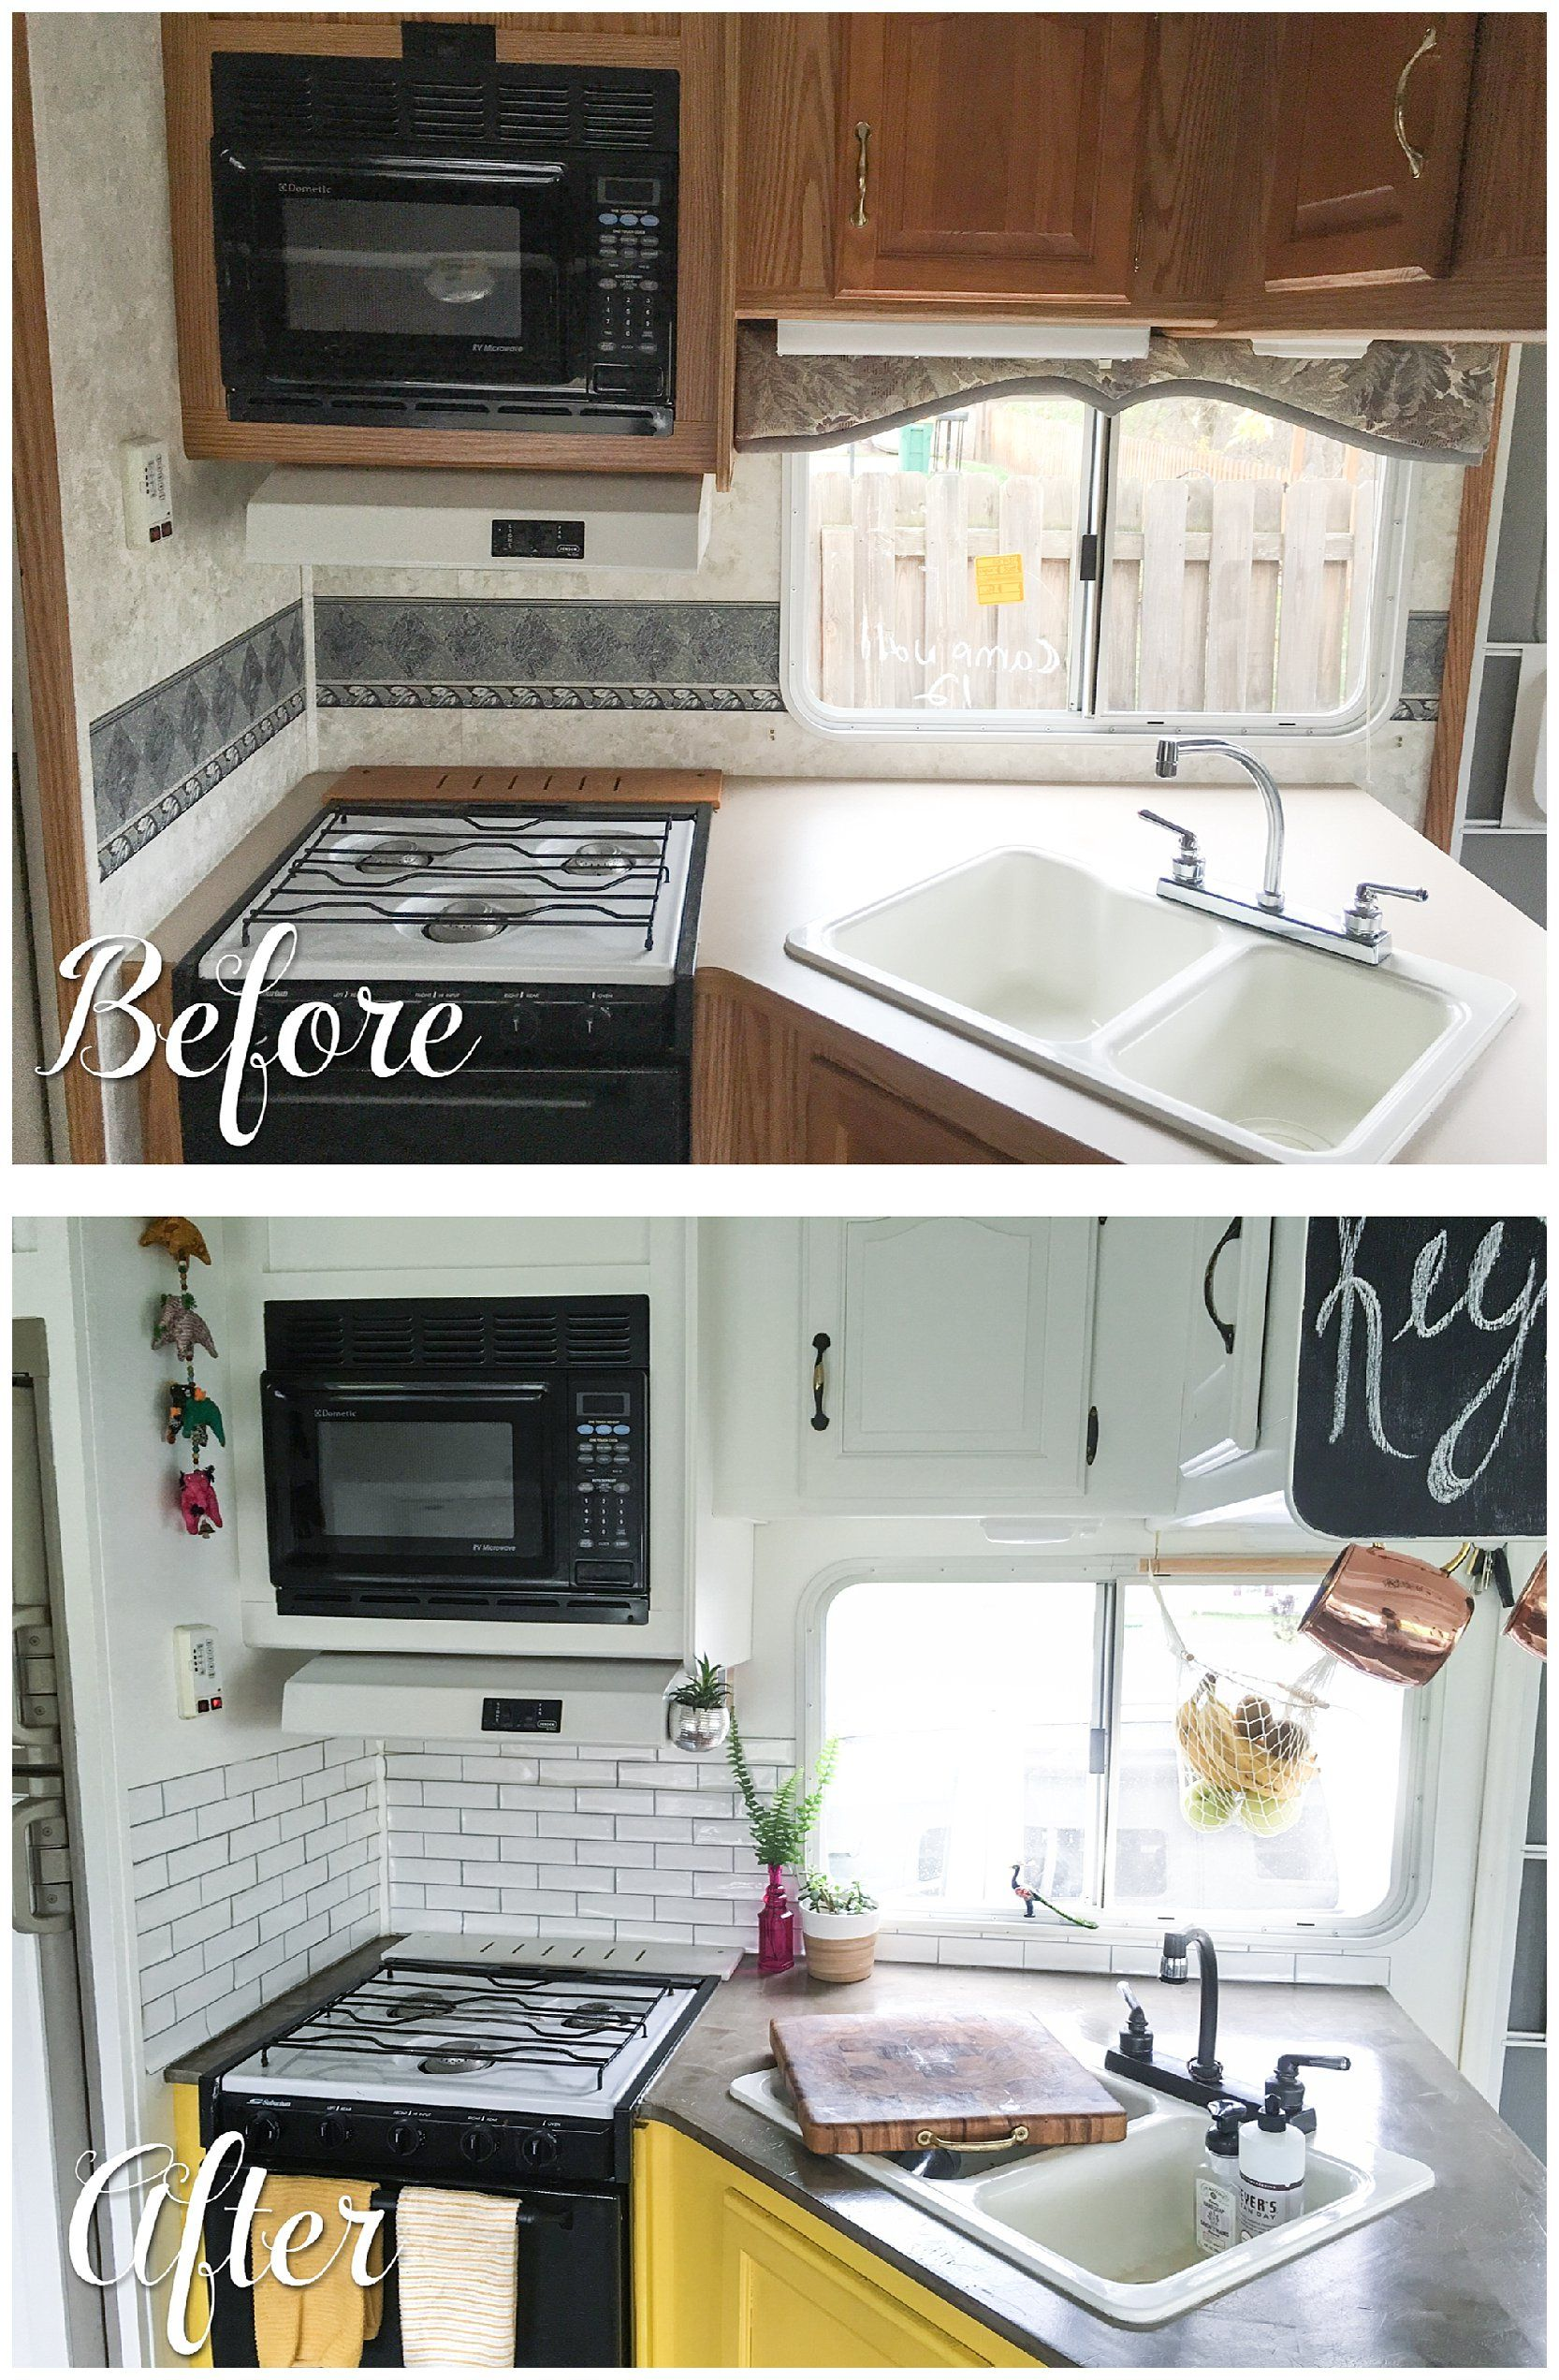 Camper Trailer Kitchen Designs Before And After Pictures Of A Rv Kitchen Renovation Camper